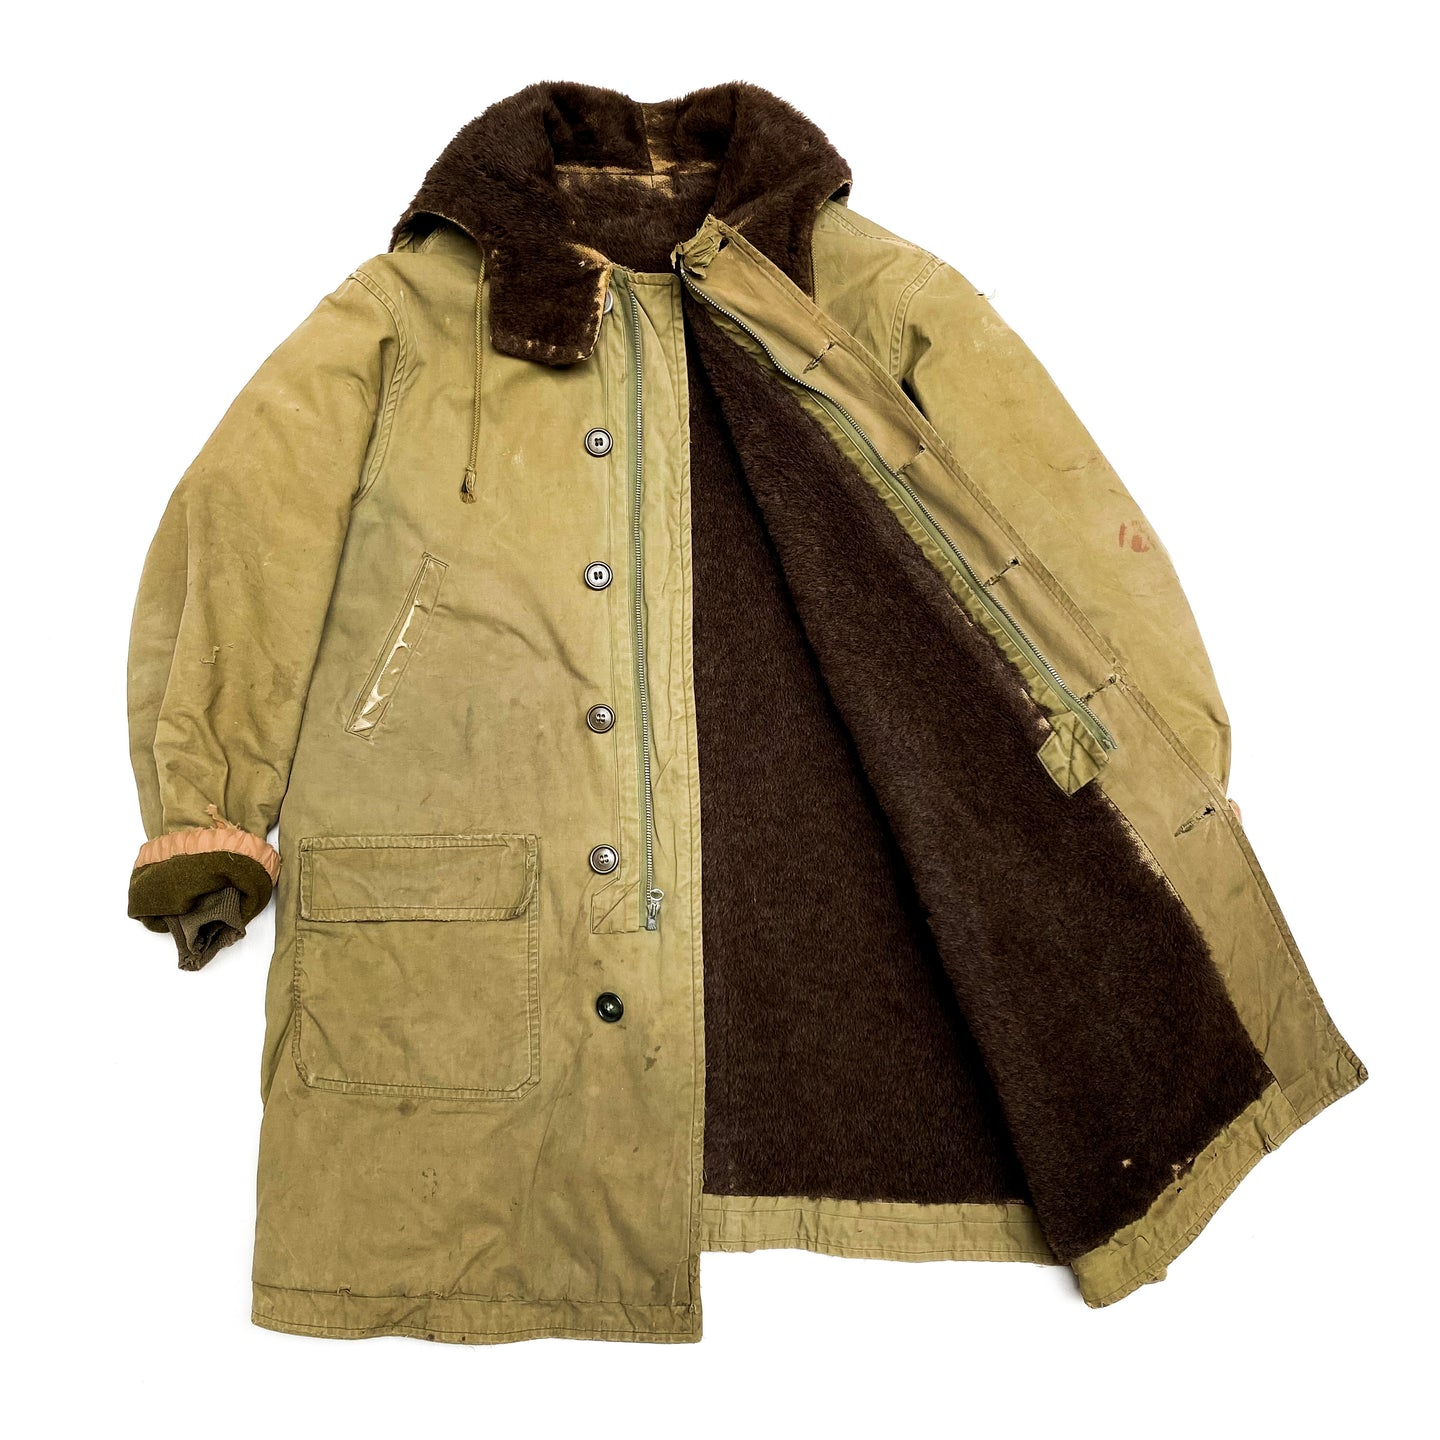 1940s WWII Military Green Alpaca Hooded Parka